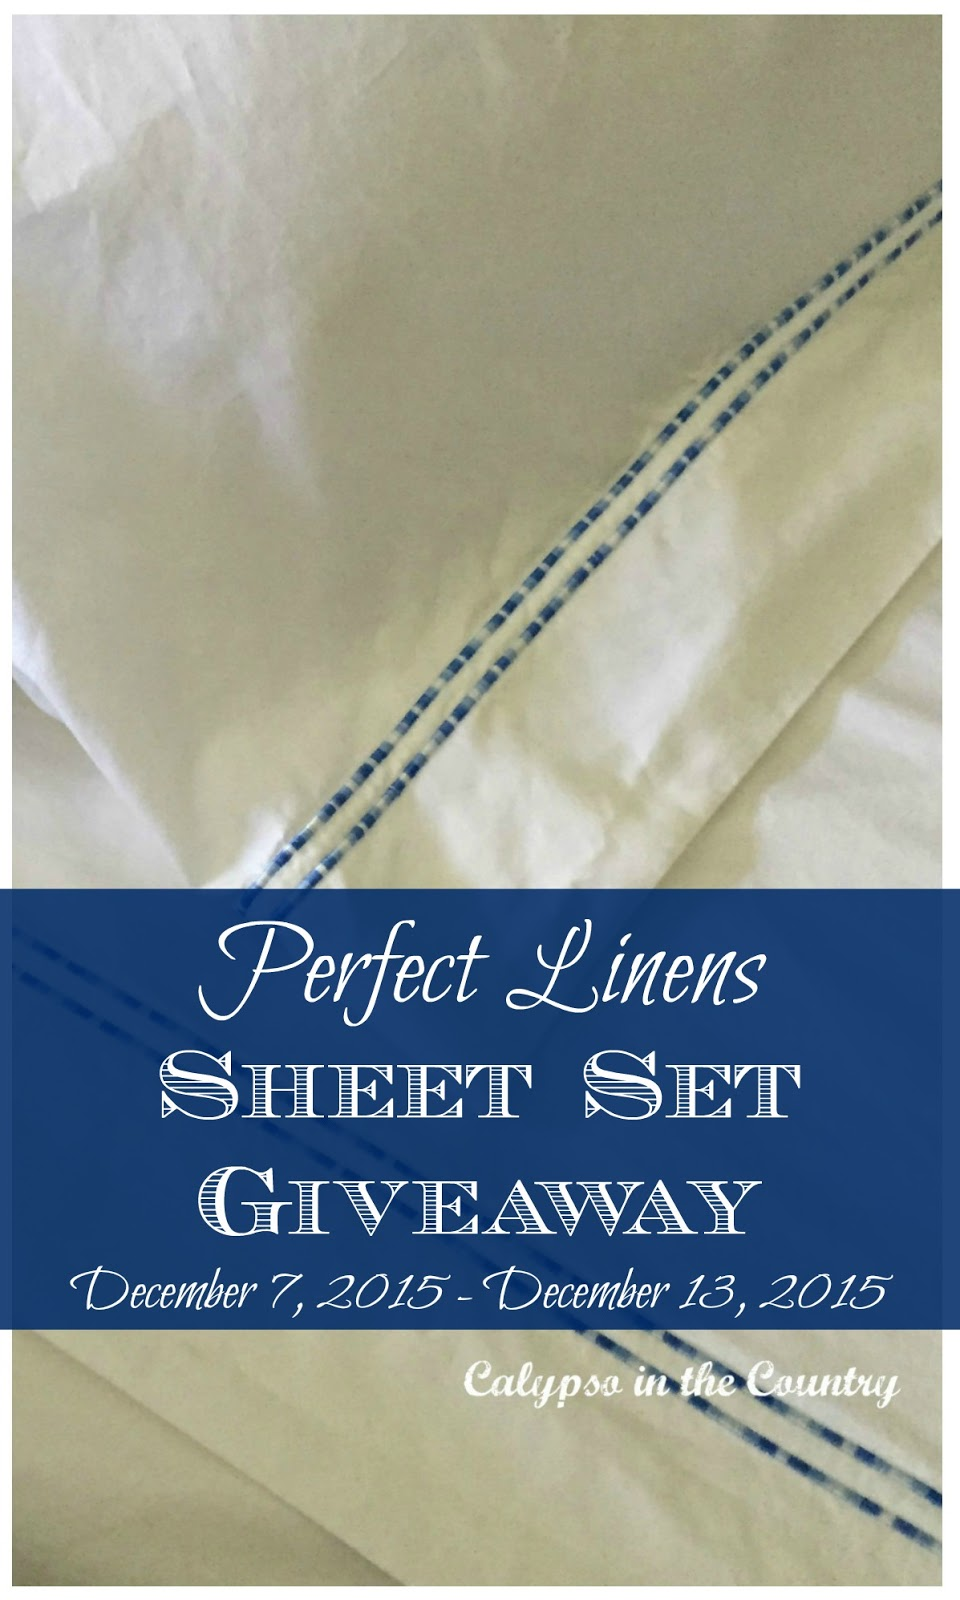 Enter for your chance to win one Perfect Linens sheet set (King or Queen)